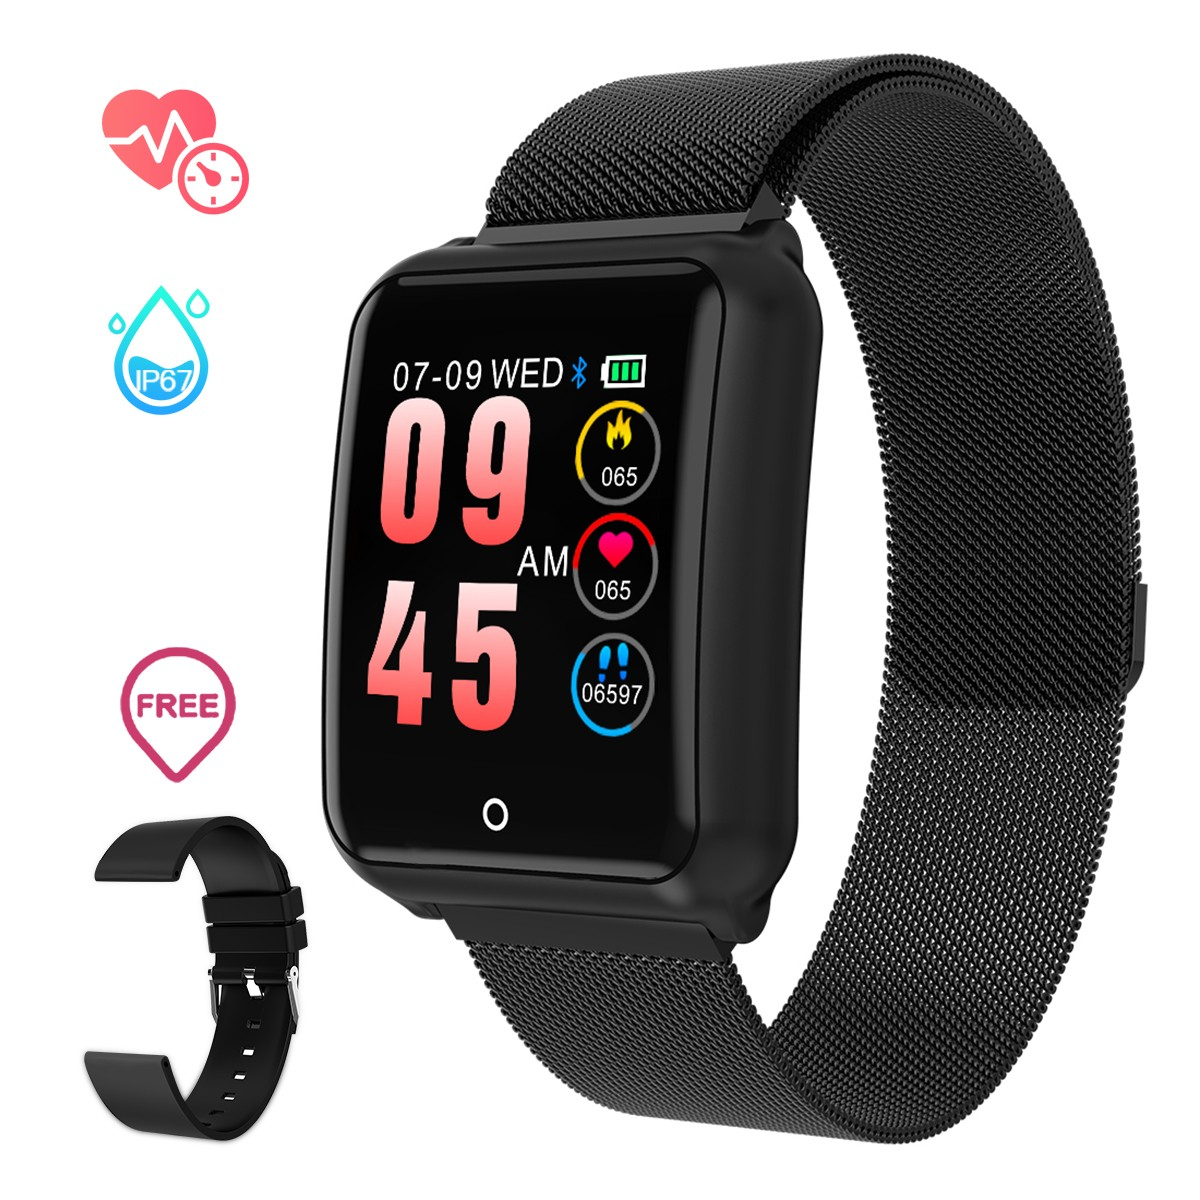 Lover's Watches Smart Watch Women Men Heart Rate Blood Pressure Monitor Sport Fitness Tracker Smart Wristband Electronics Watch For Android Ios